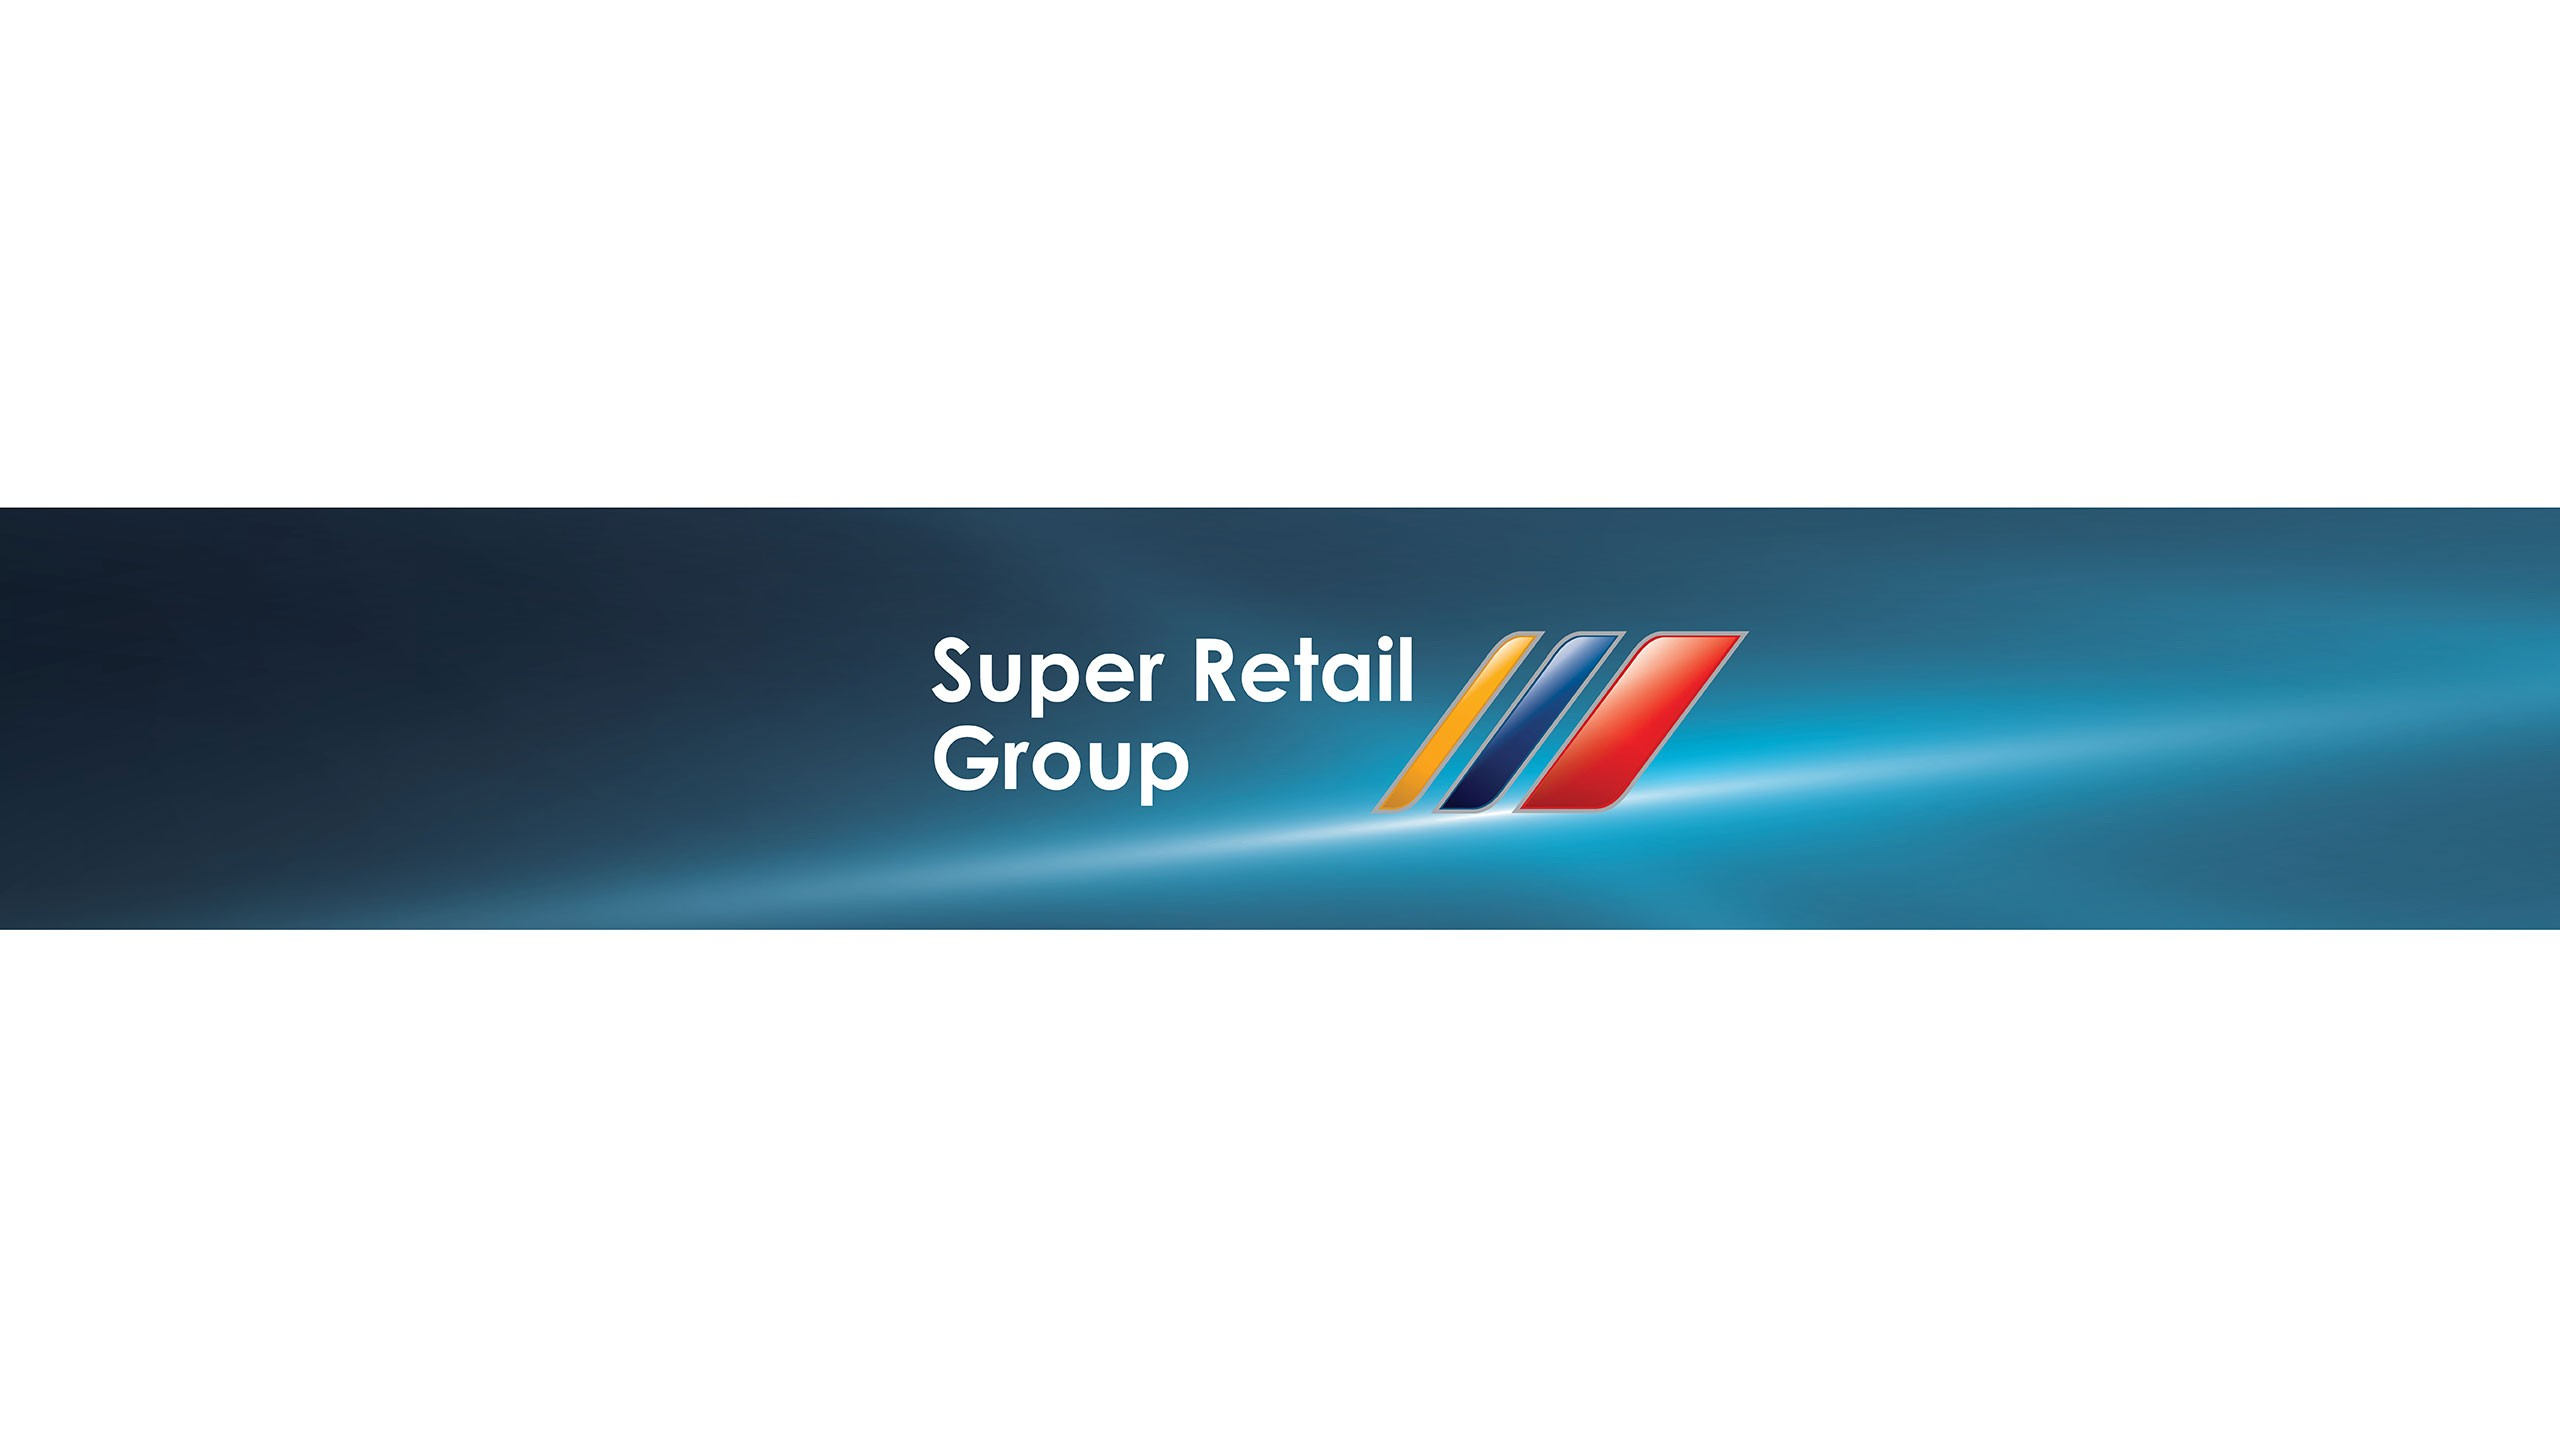 Super Retail Group | LinkedIn